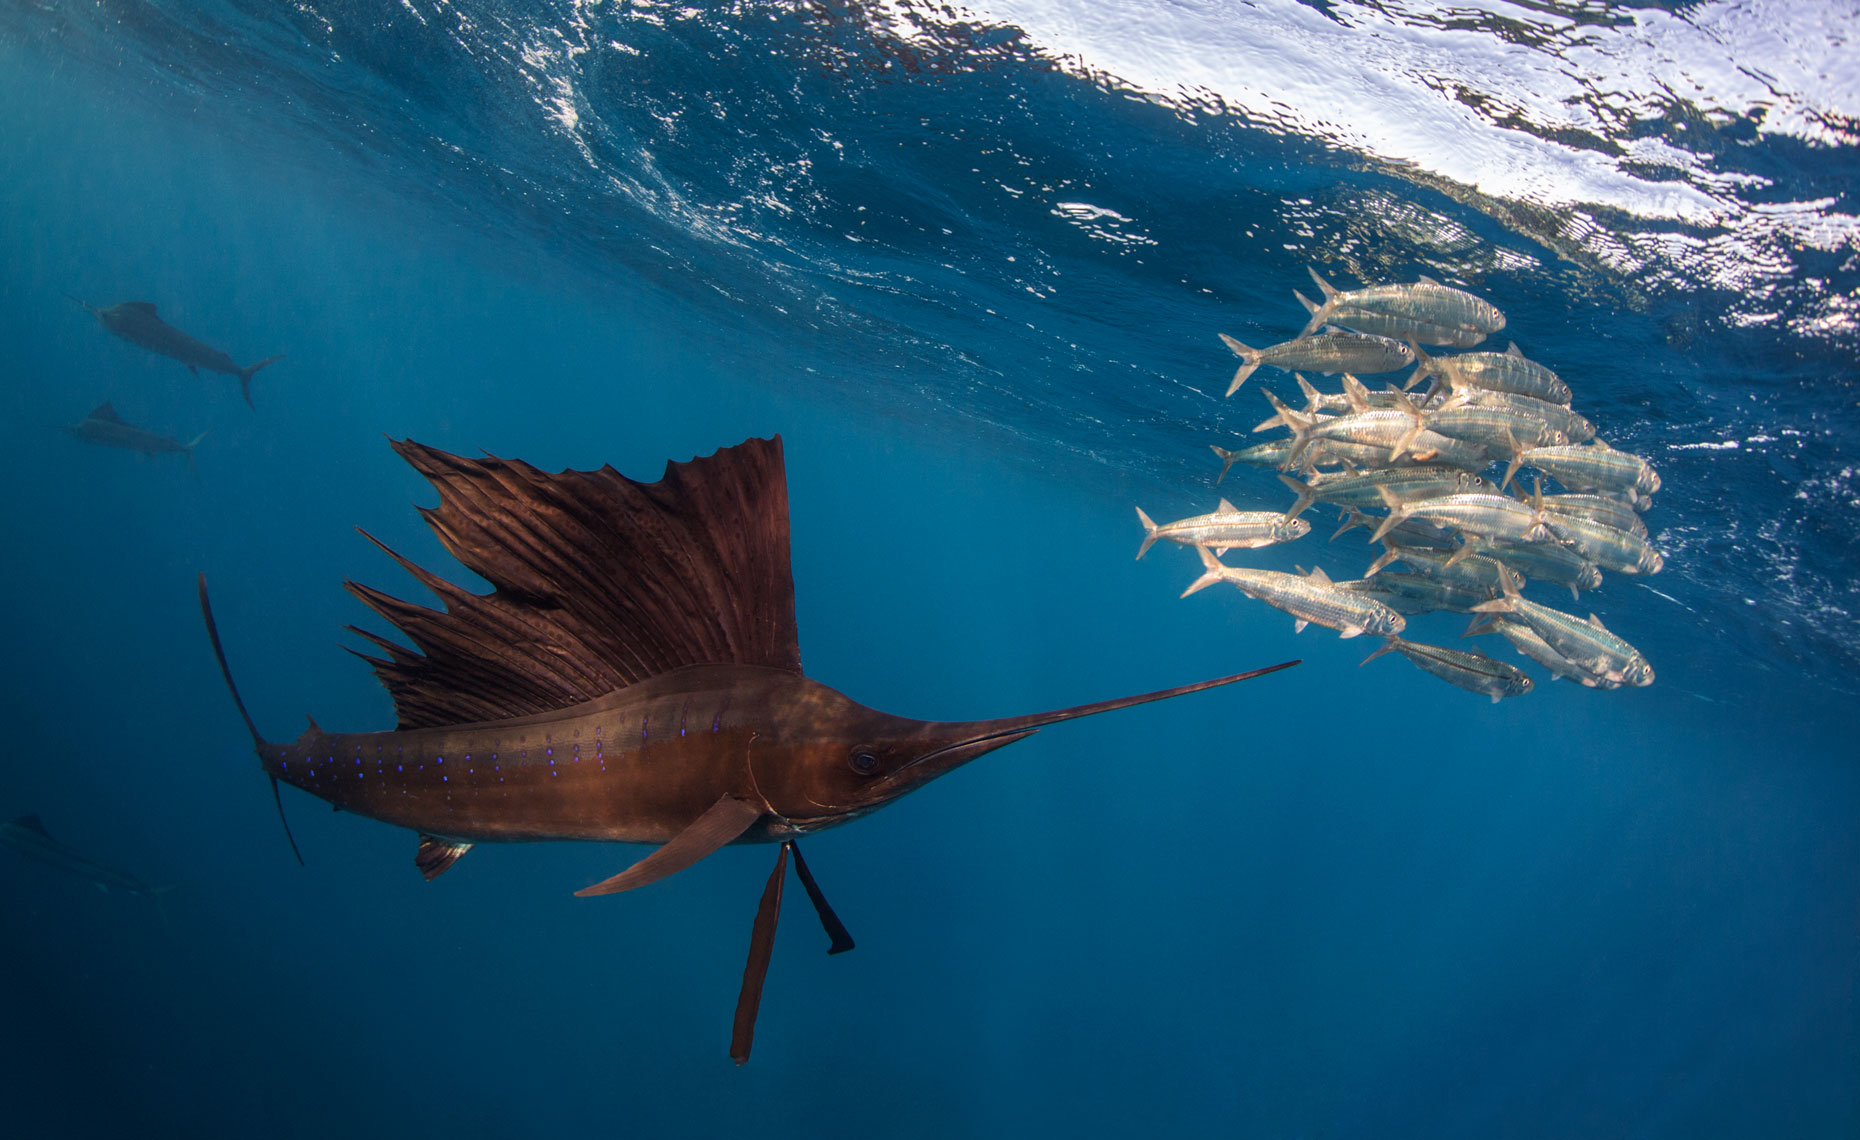 Sailfish hunting